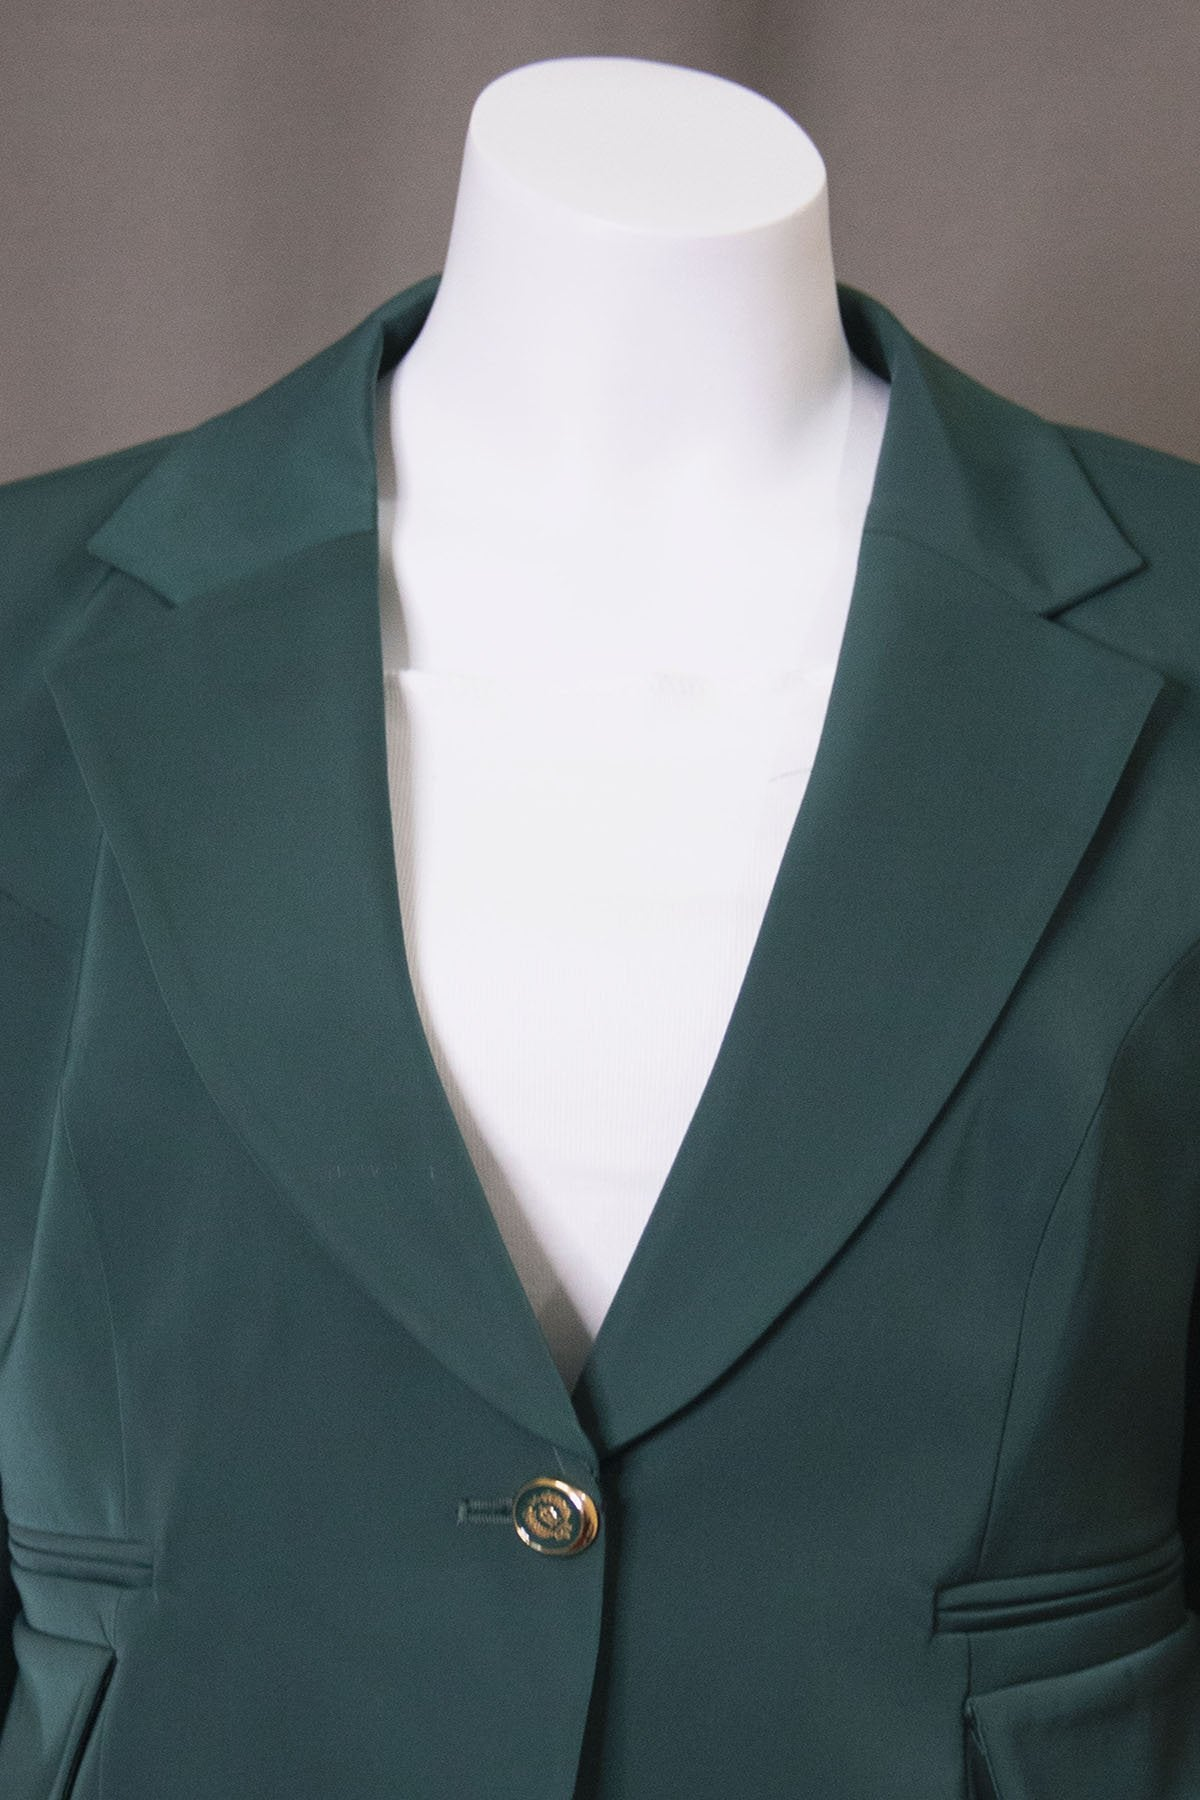 LADIES SUIT GREEN BUTIK DAYI TURKEY